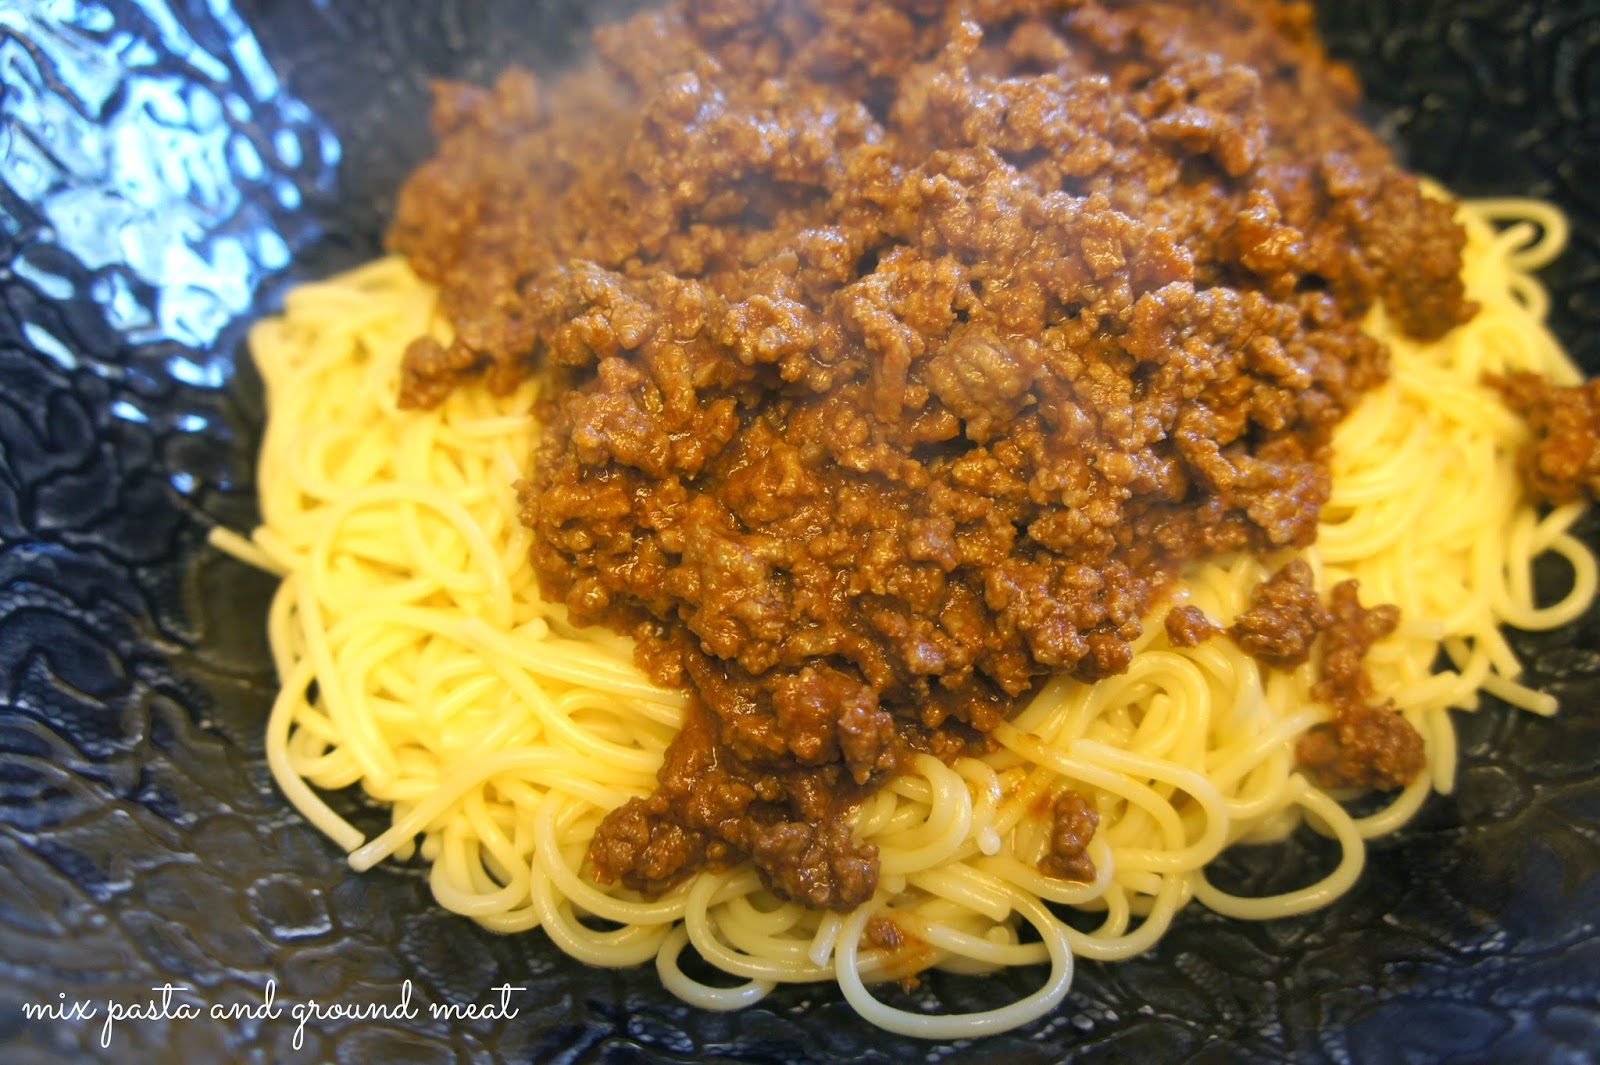 Steps to make #BarillaFiesta Mexican Cowboy Spaghetti